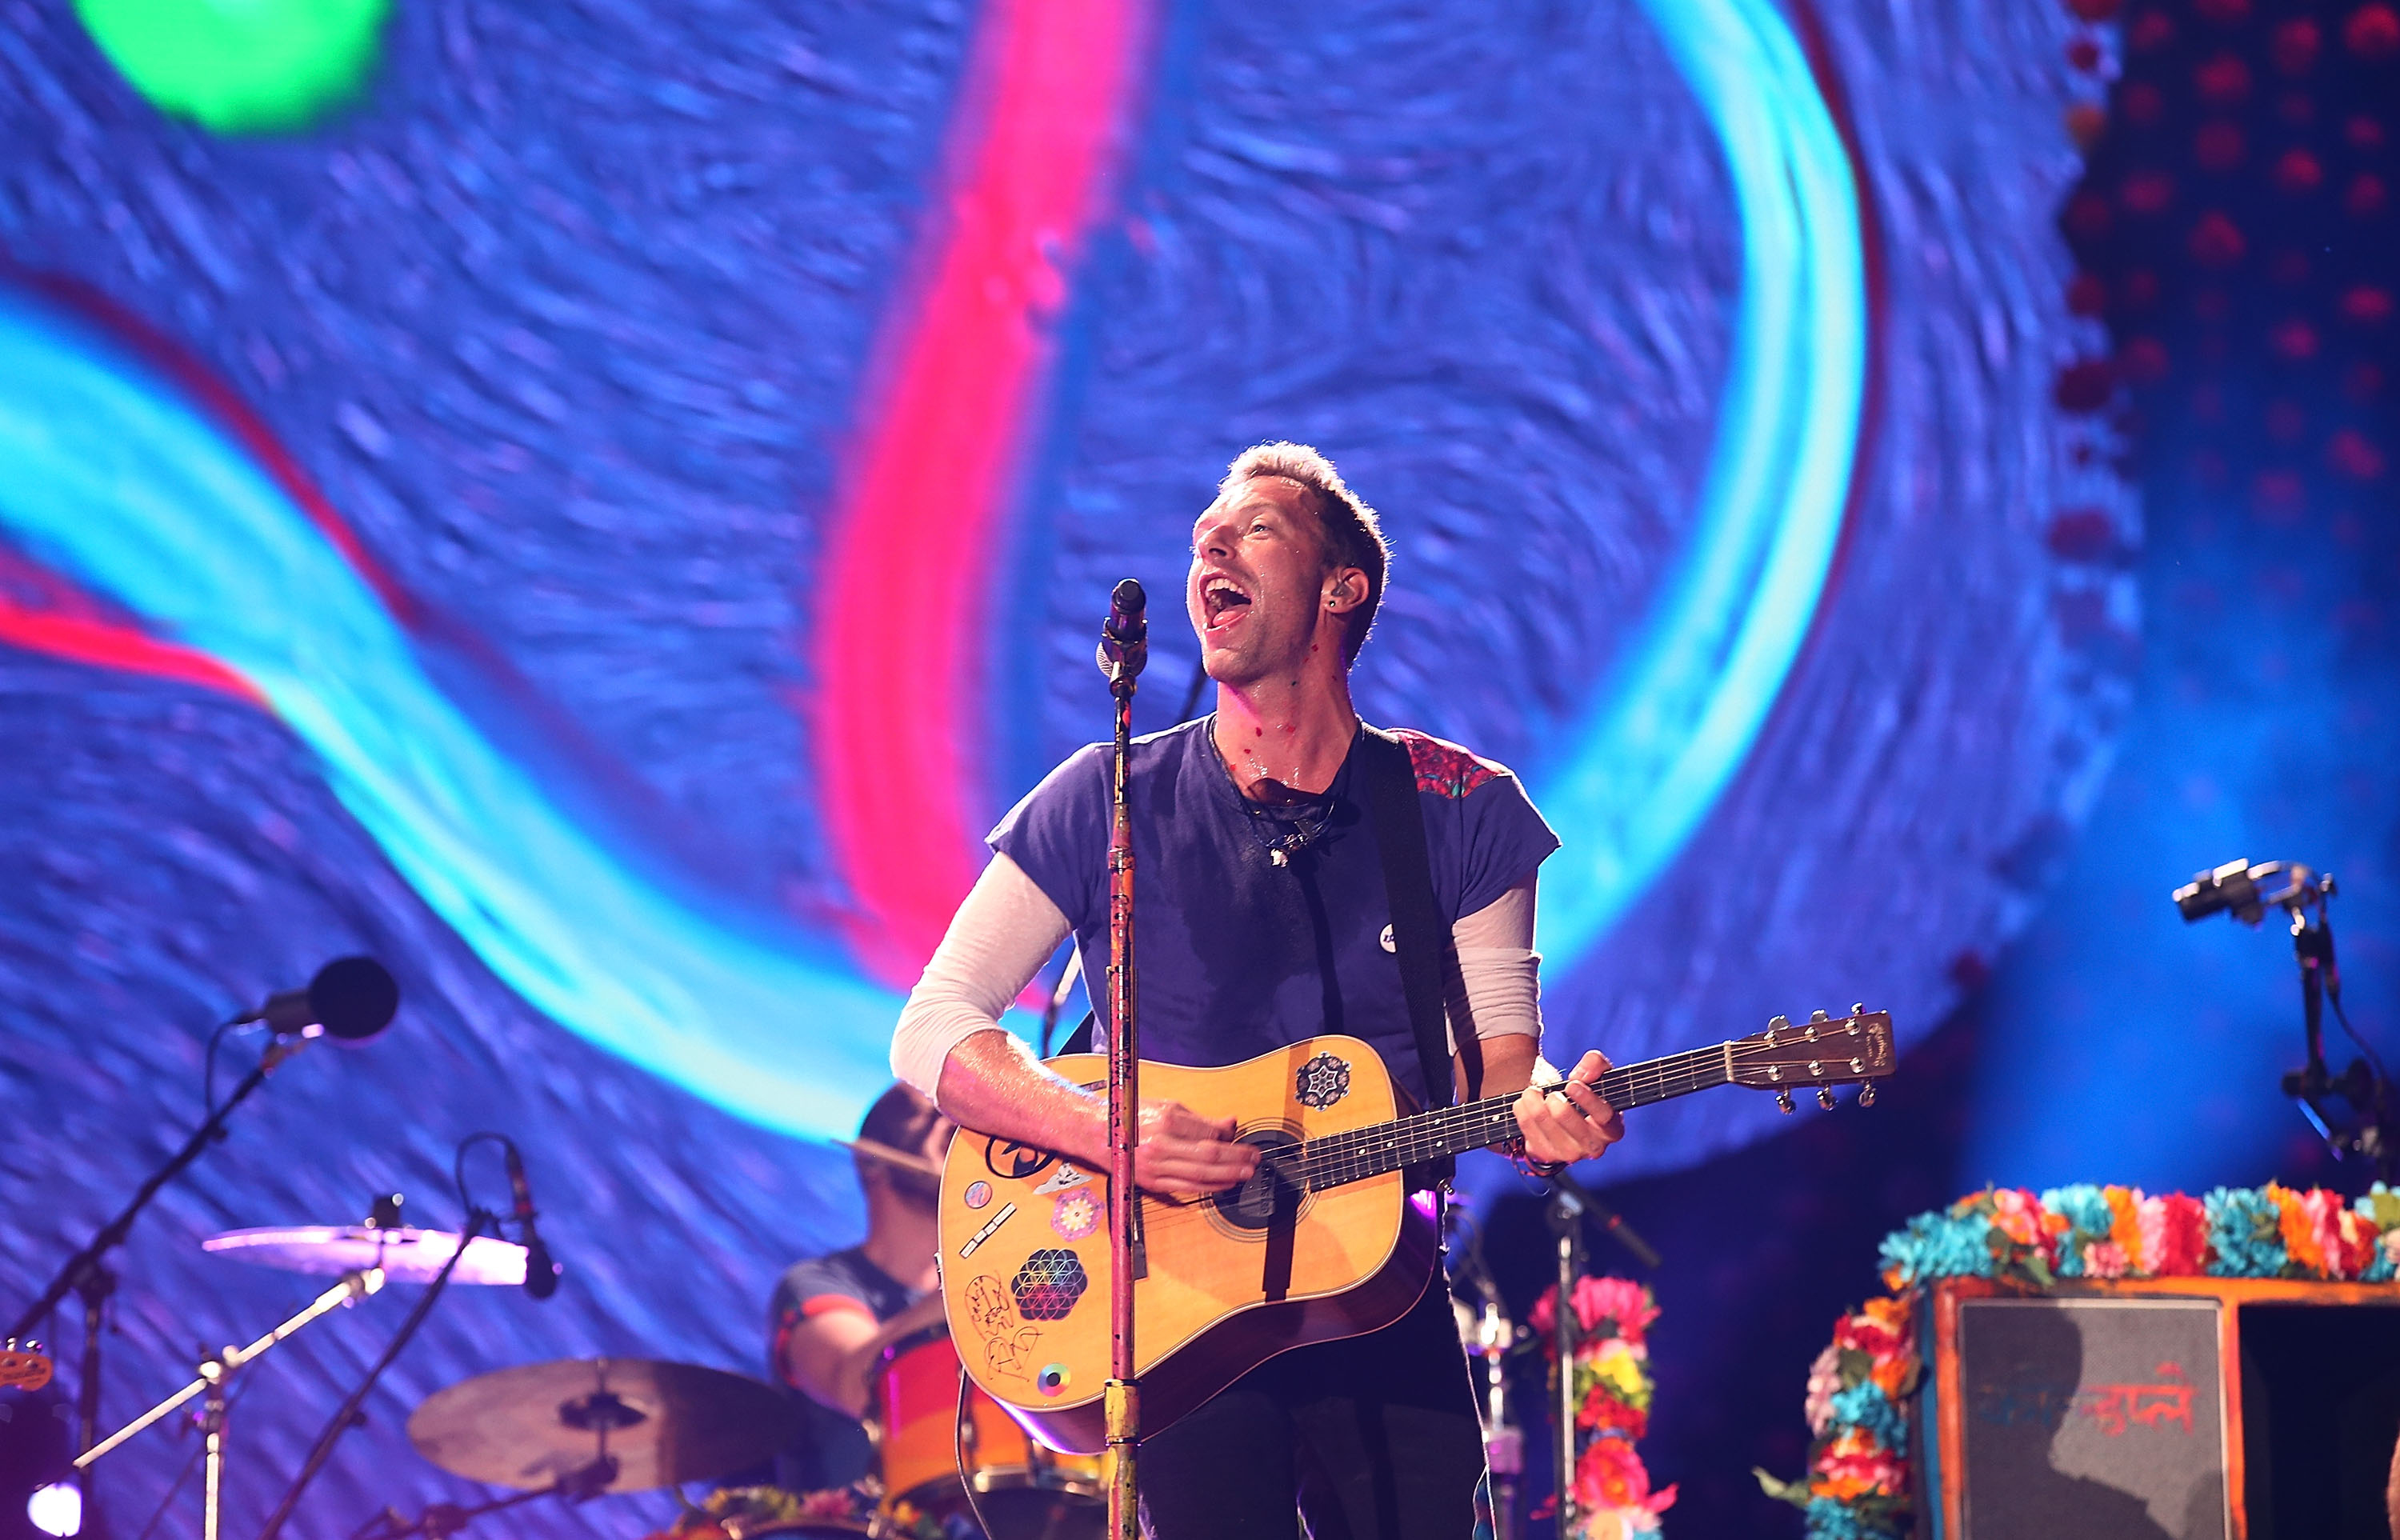 coldplay singer chris martin paid tribute to the late george michael with a performance of last christmas at a london homeless shelter - The Last Christmas